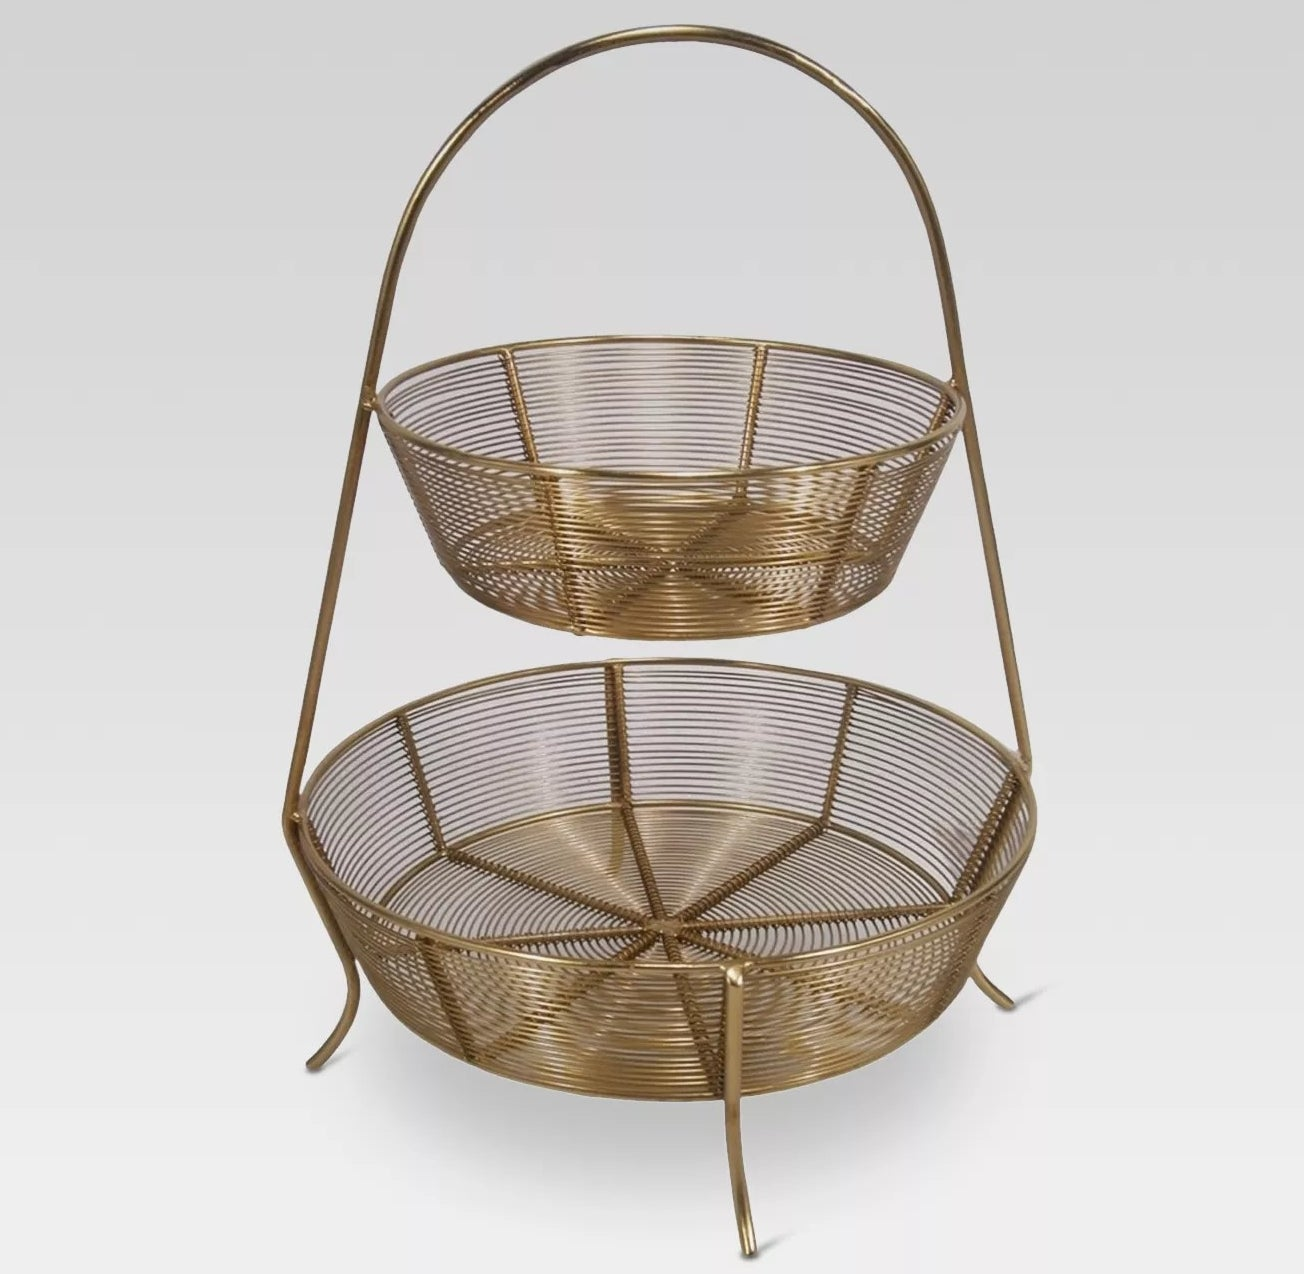 two-tiered wire basket